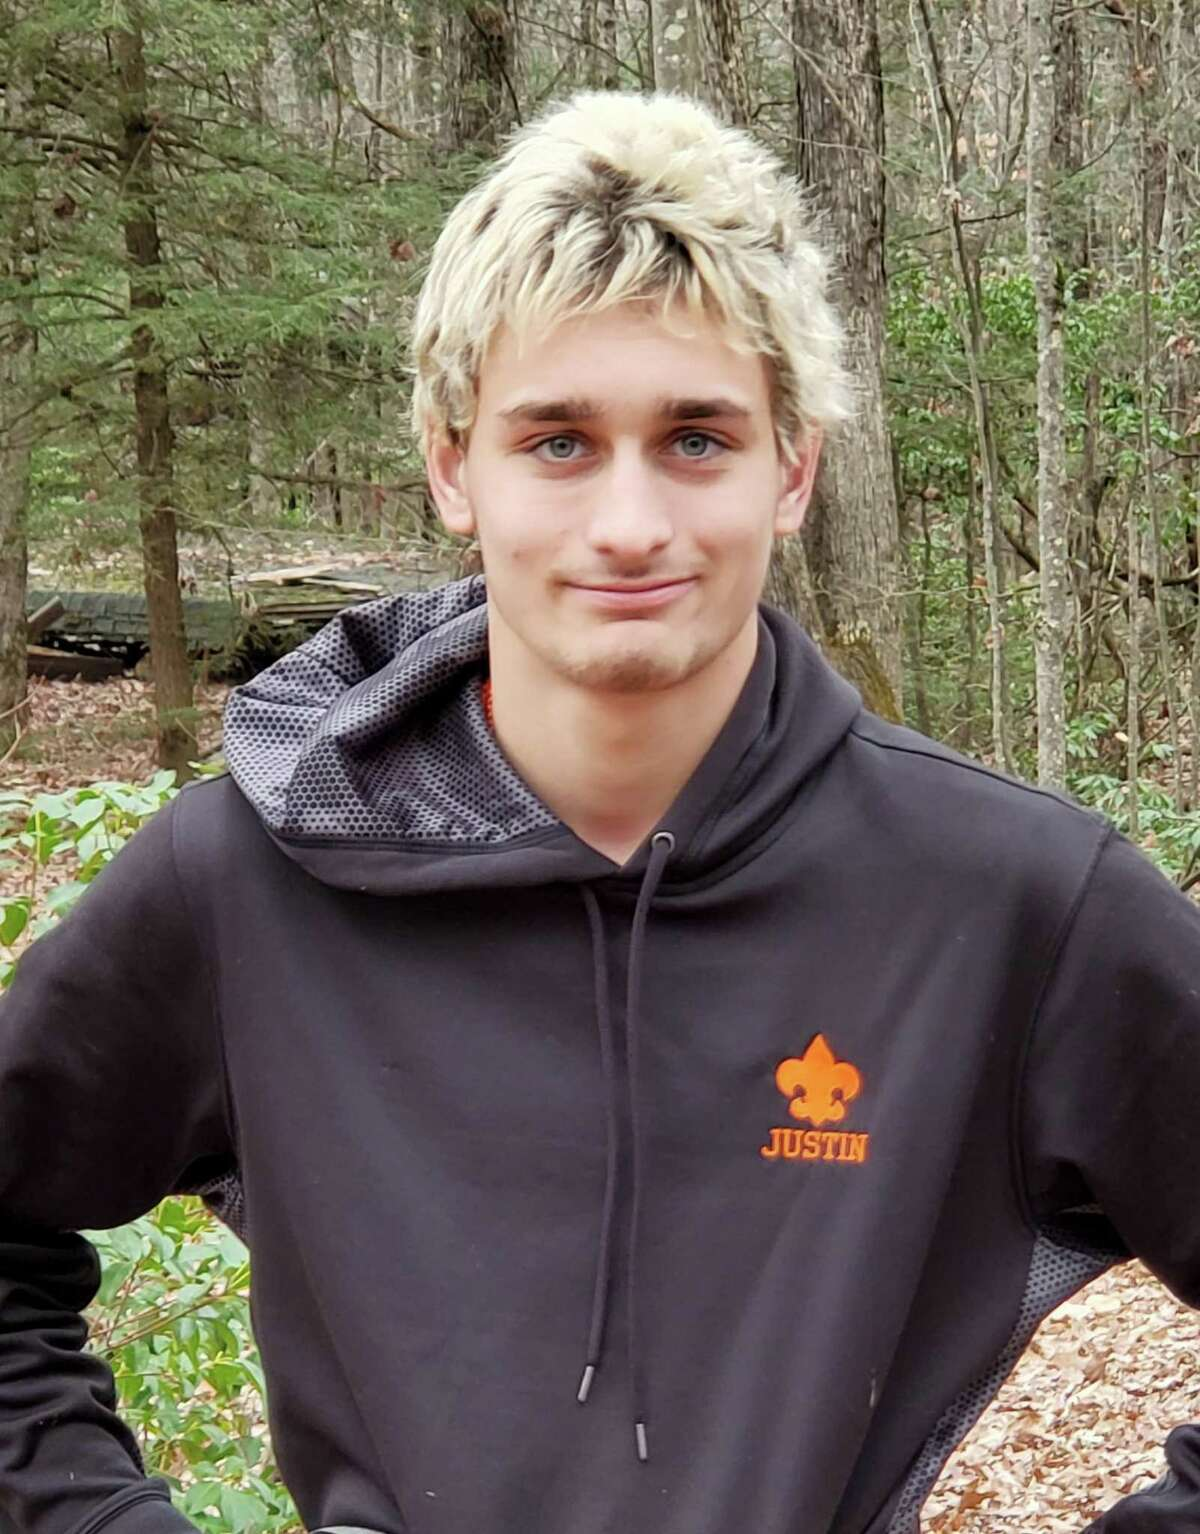 Justin Richards of Colebrook recently attained the rank of Eagle Scout.